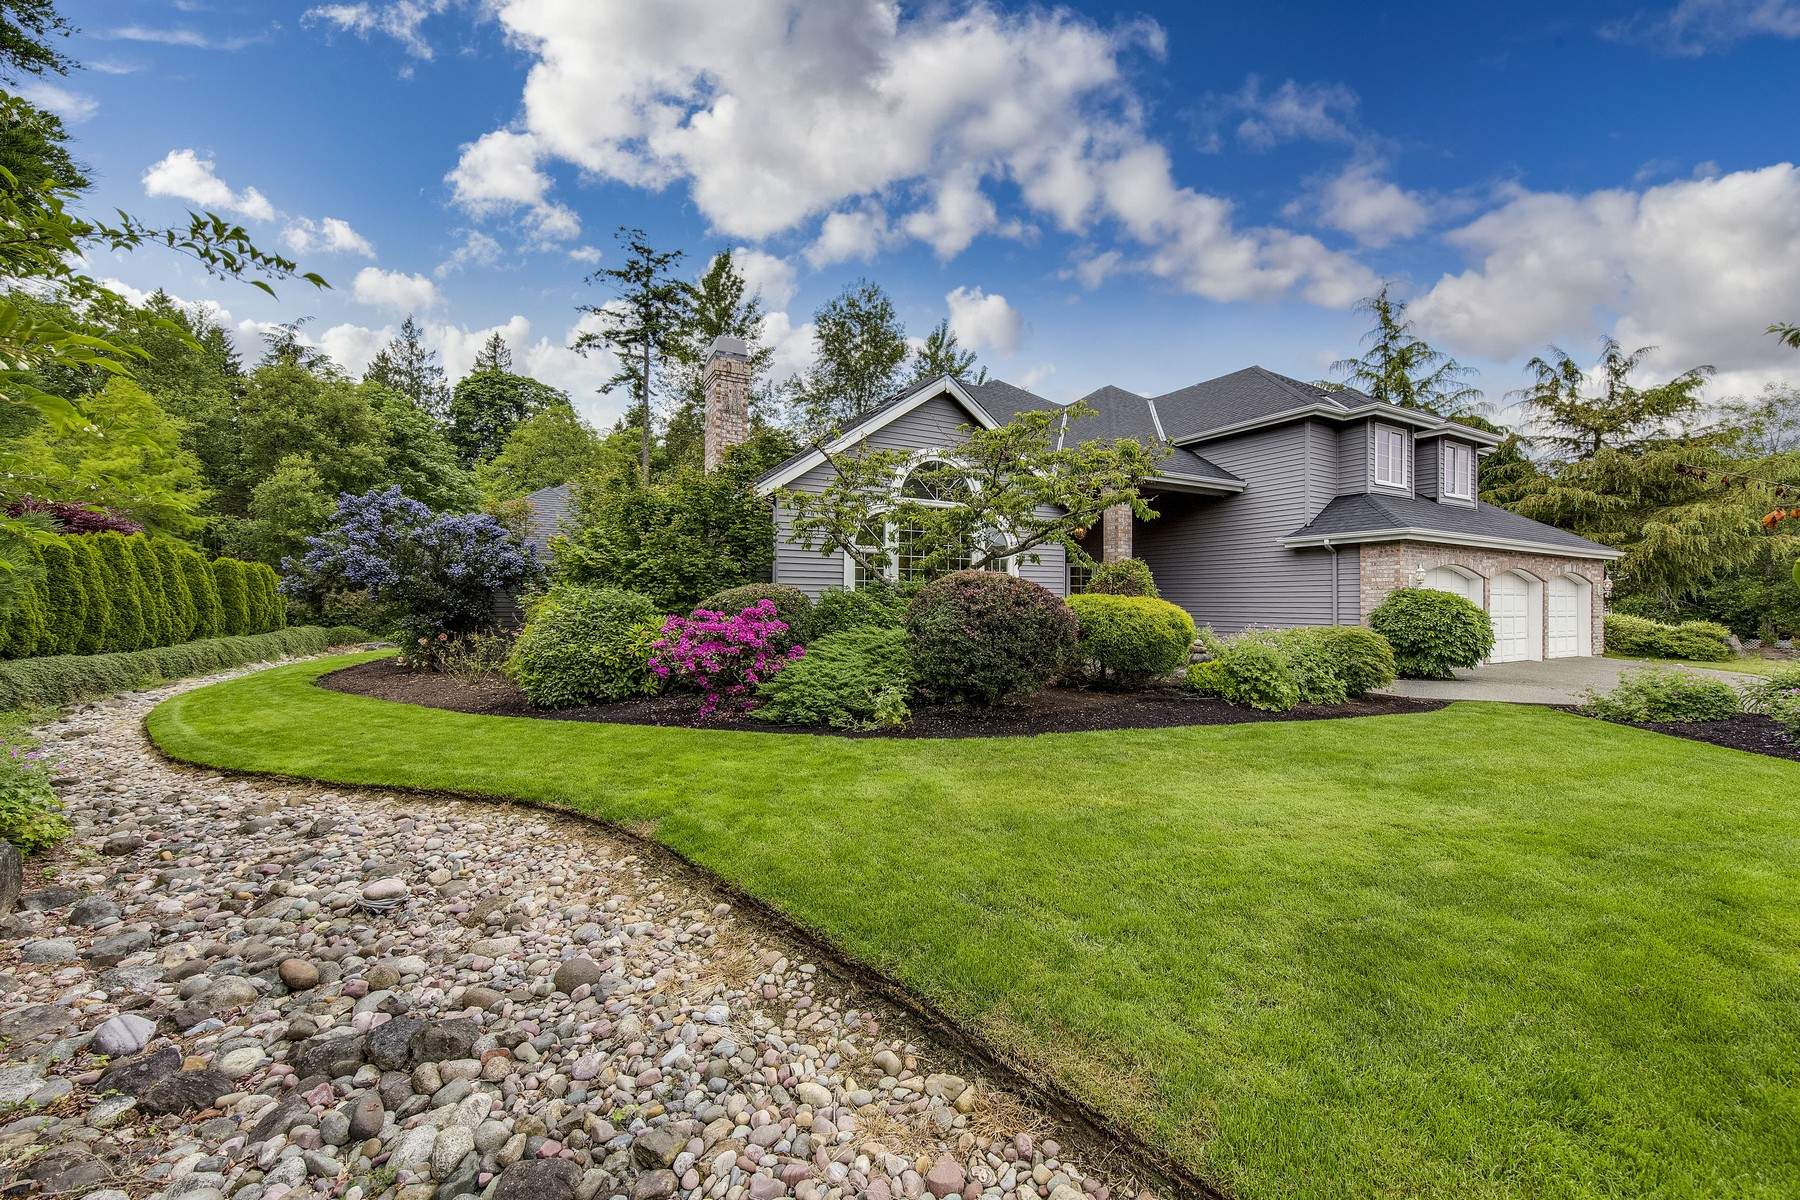 Single Family Home for Sale at Spacious and In Town! 1174 High School Road NE Bainbridge Island, Washington 98110 United States